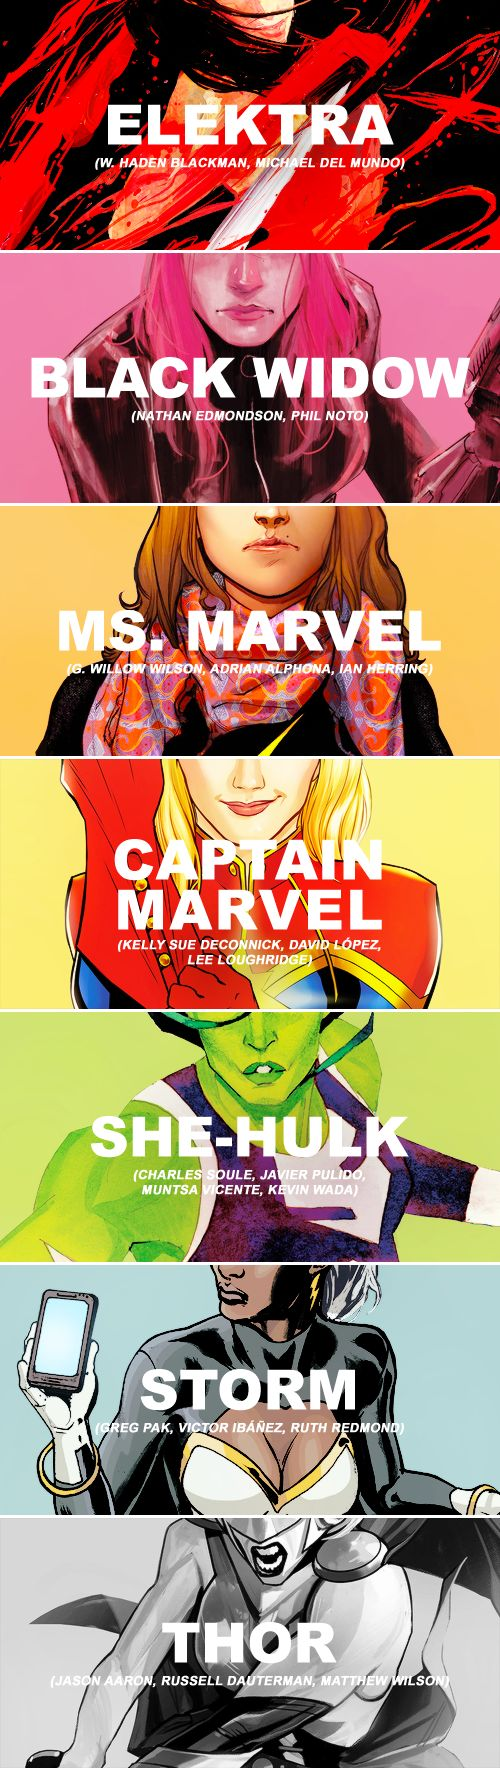 Marvel Now! (Ongoing) Solo Female Titles. Where's the Spider gals? We need more women in superhero movies a sap.